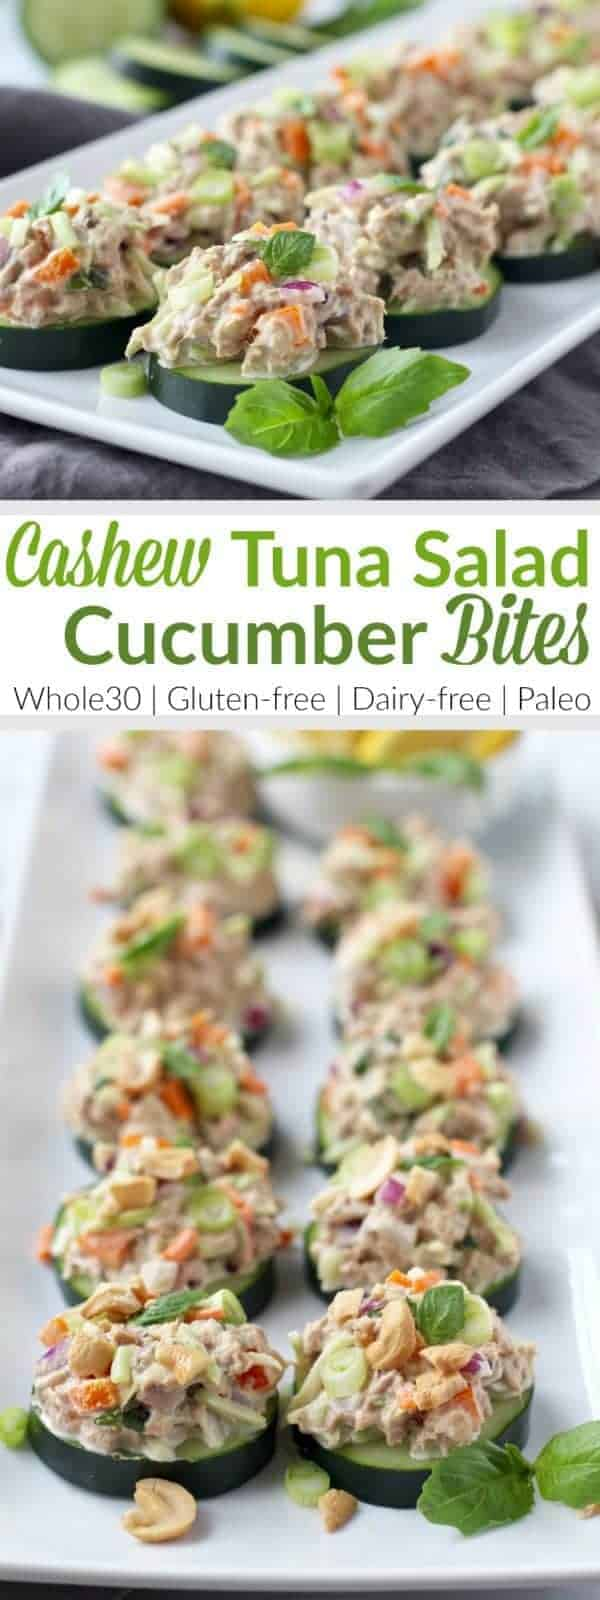 Tasty Cashew Tuna Salad Cucumber Bites make for the perfect Whole30-friendly lunch (or snack) and are made in just 10 minutes! | The Real Food Dietitians | https://therealfoodrds.com/cashew-tuna-salad-cucumber-bites/